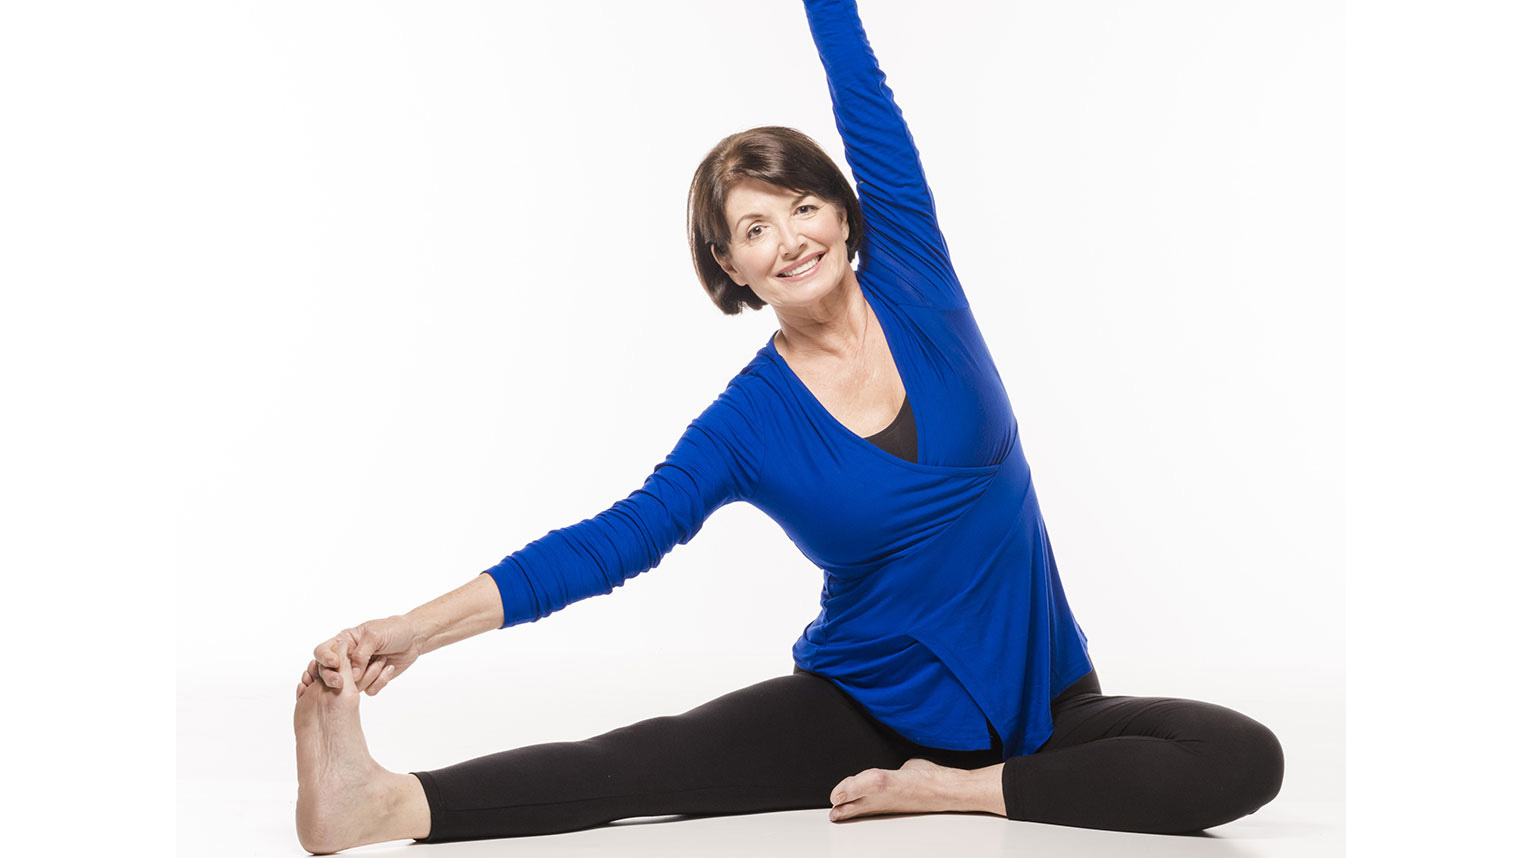 Easy Yoga - The Secret to Strength and Balance w/Peggy Cappy